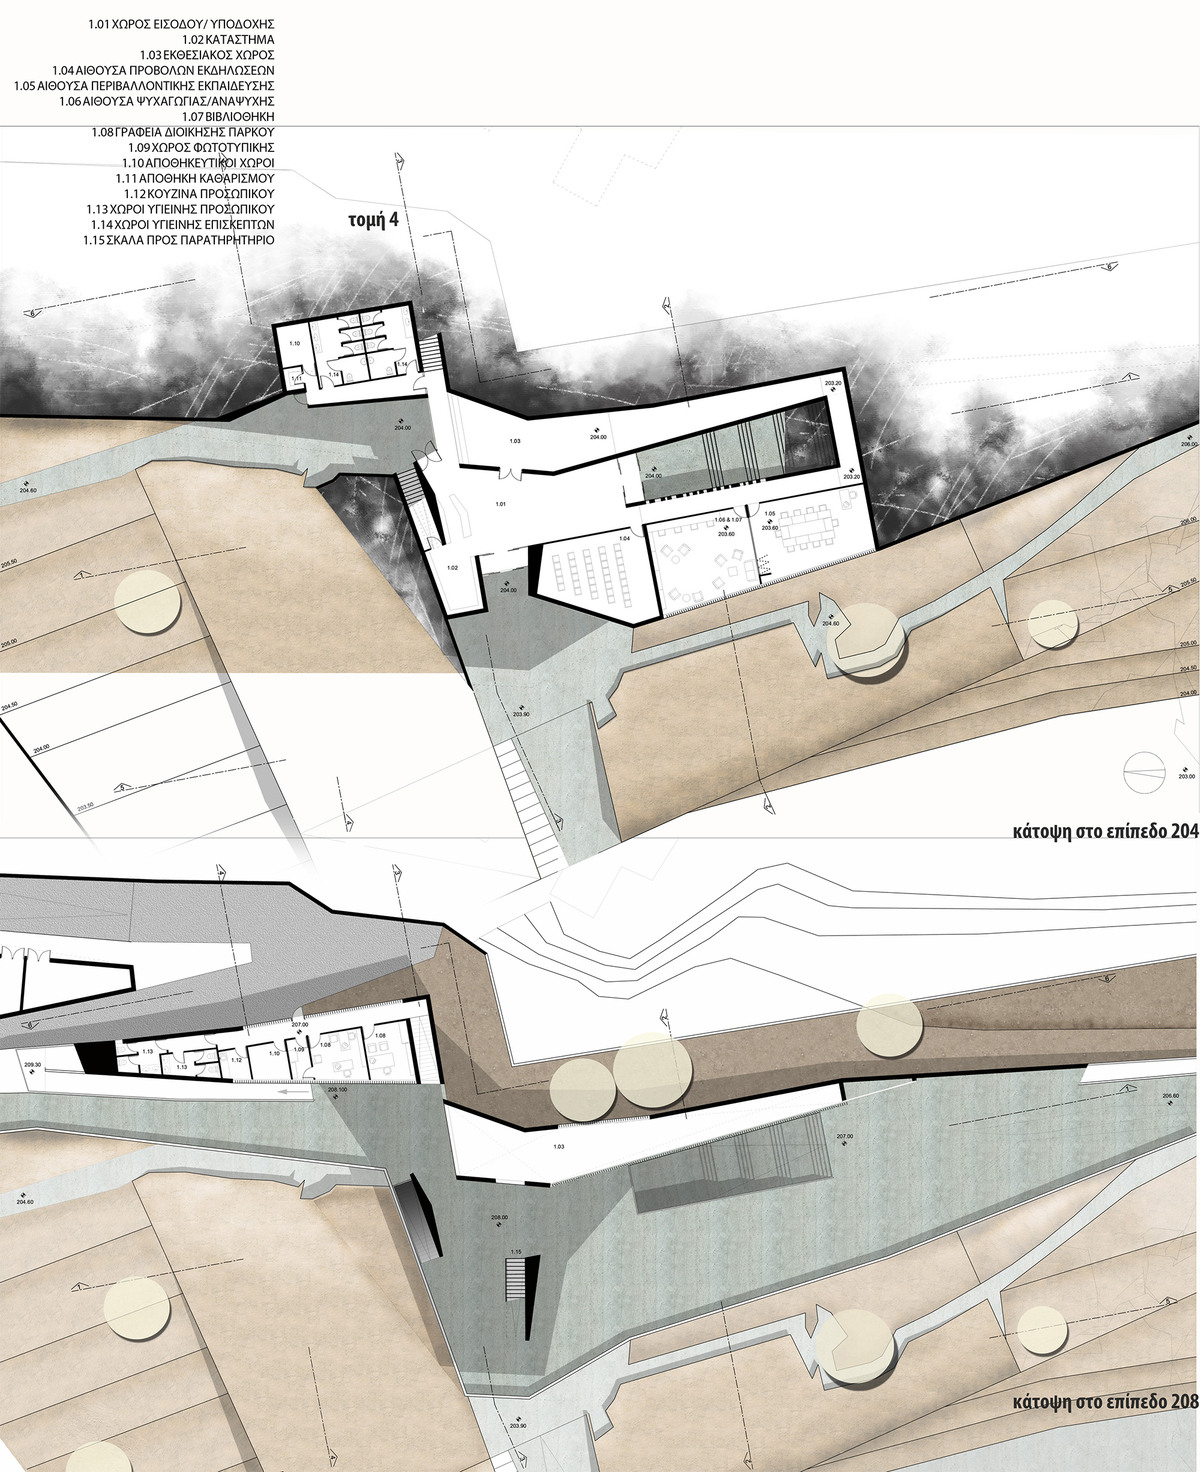 Plans of the ground floor (top) and first floor (bottom) of the Centre of Environmental Information.